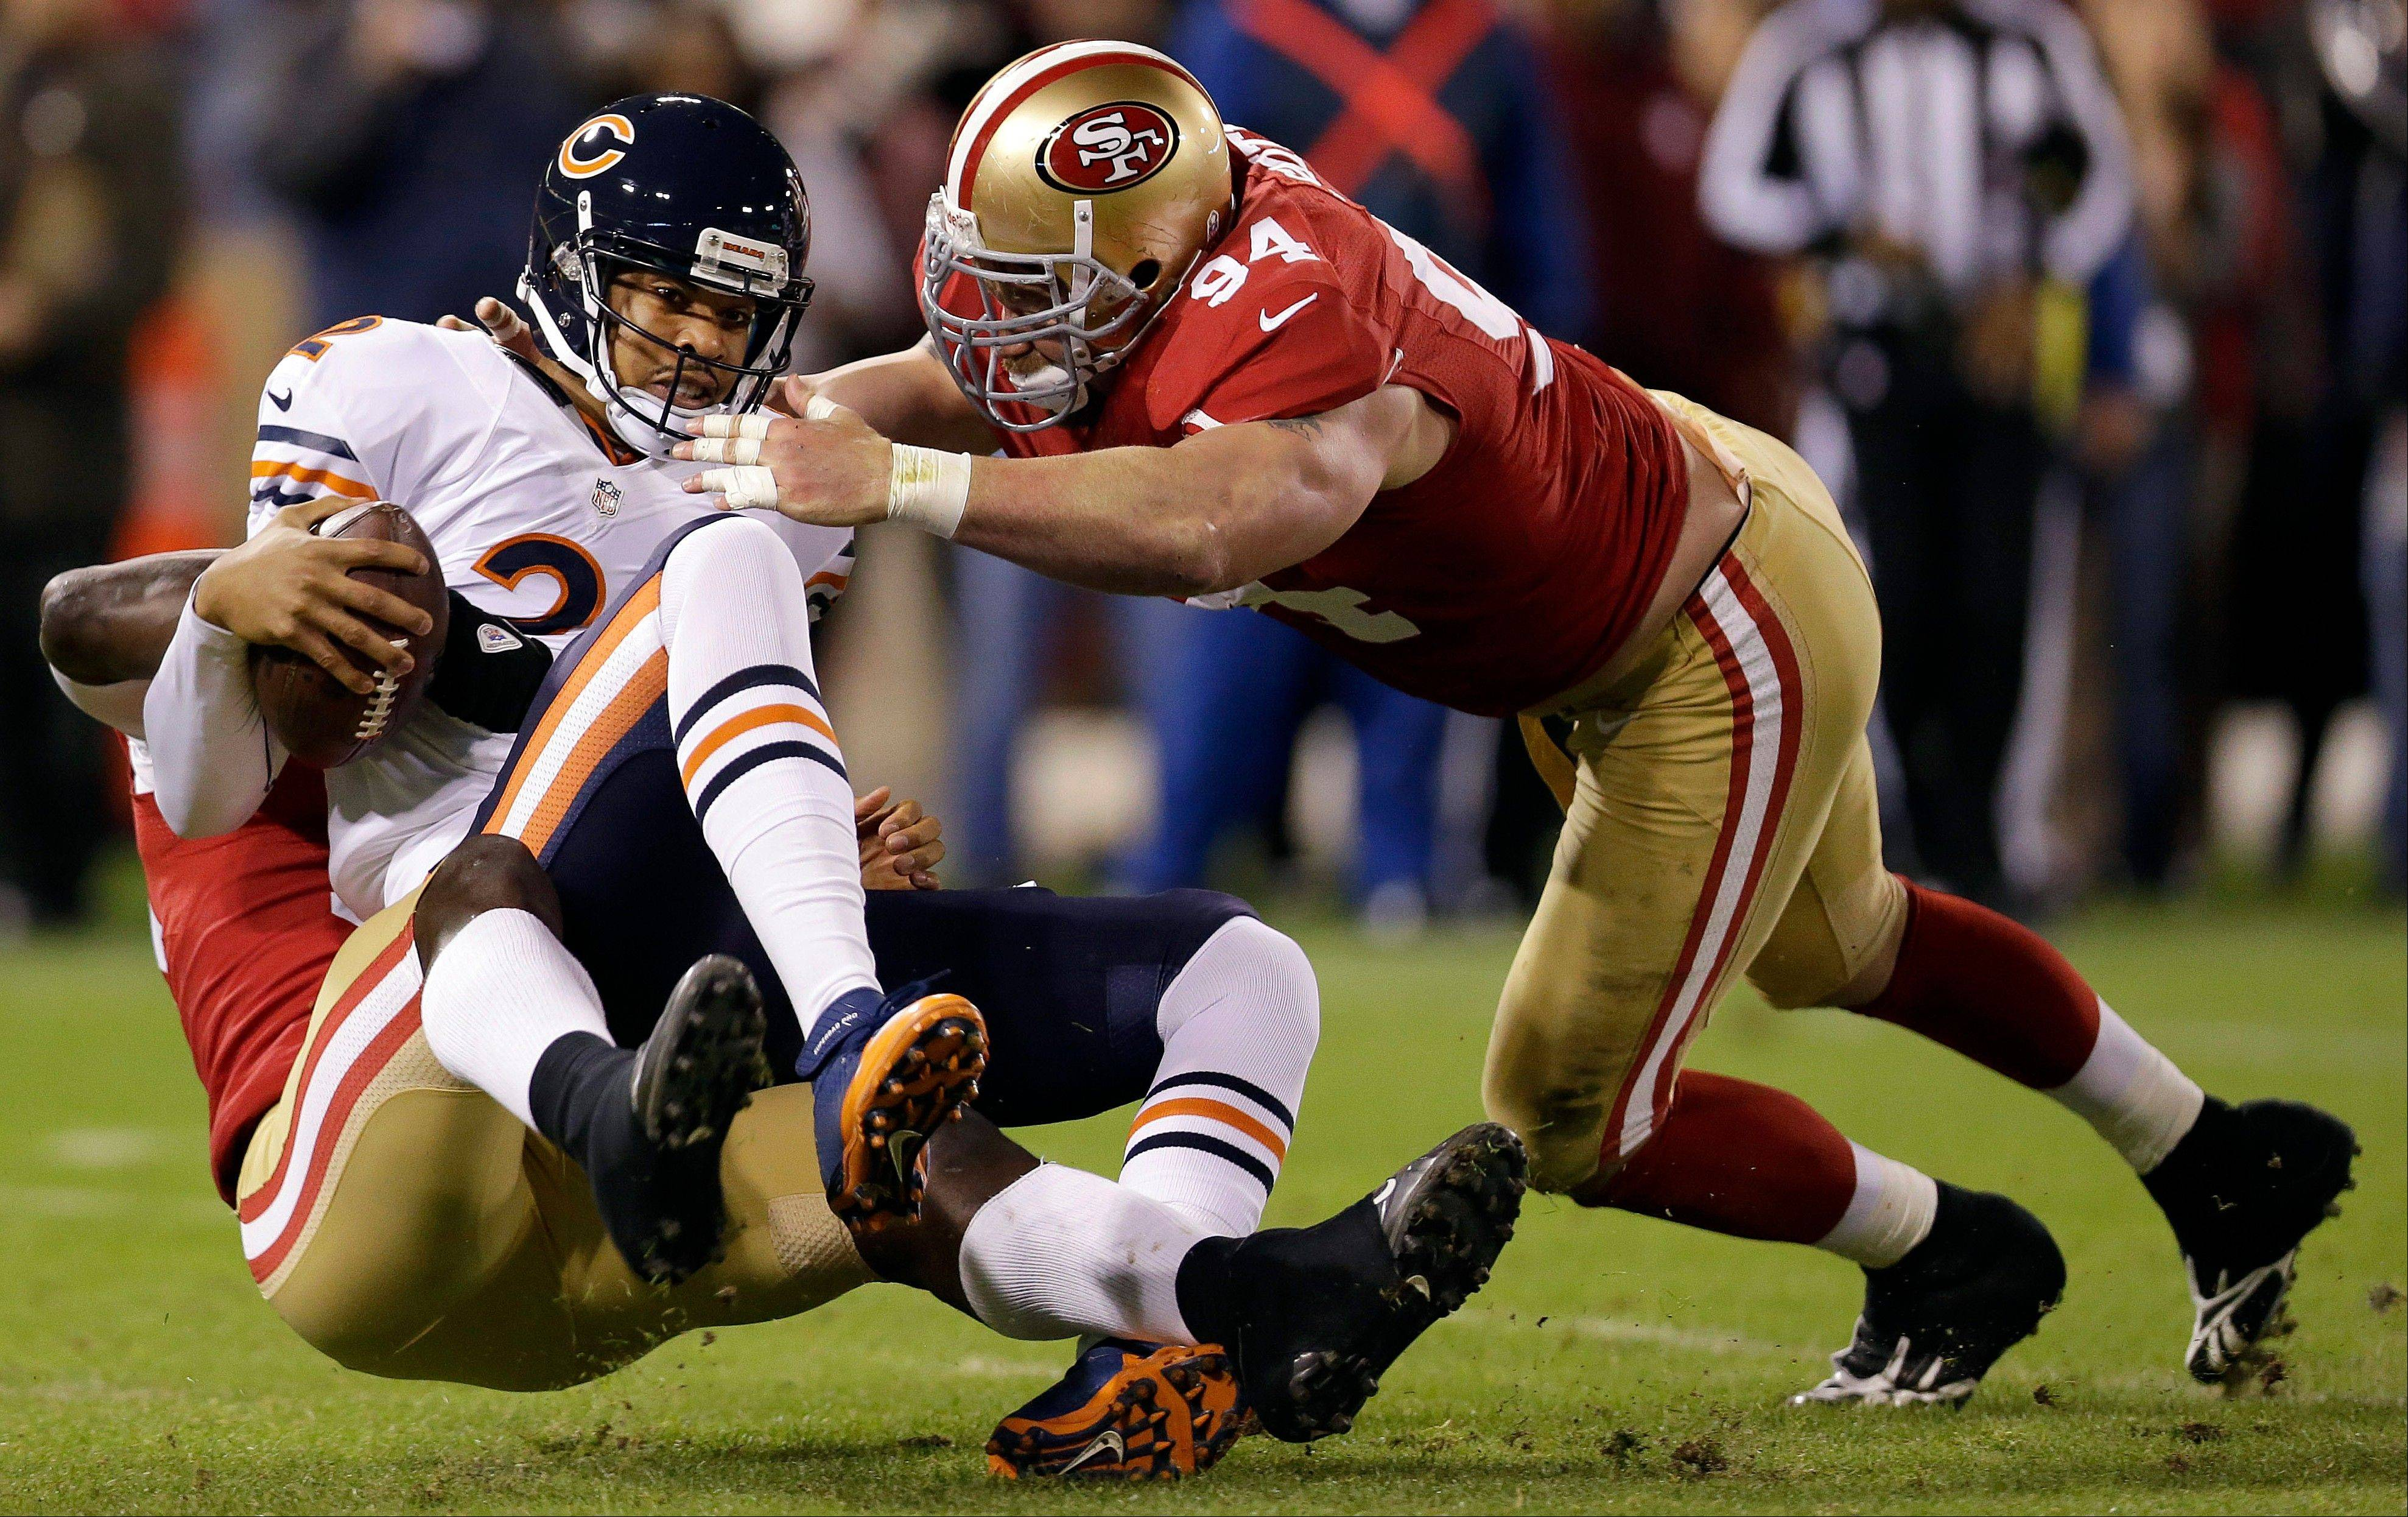 Chicago Bears quarterback Jason Campbell is sacked by San Francisco 49ers linebacker Aldon Smith, left, as defensive tackle Justin Smith converges during the first quarter.